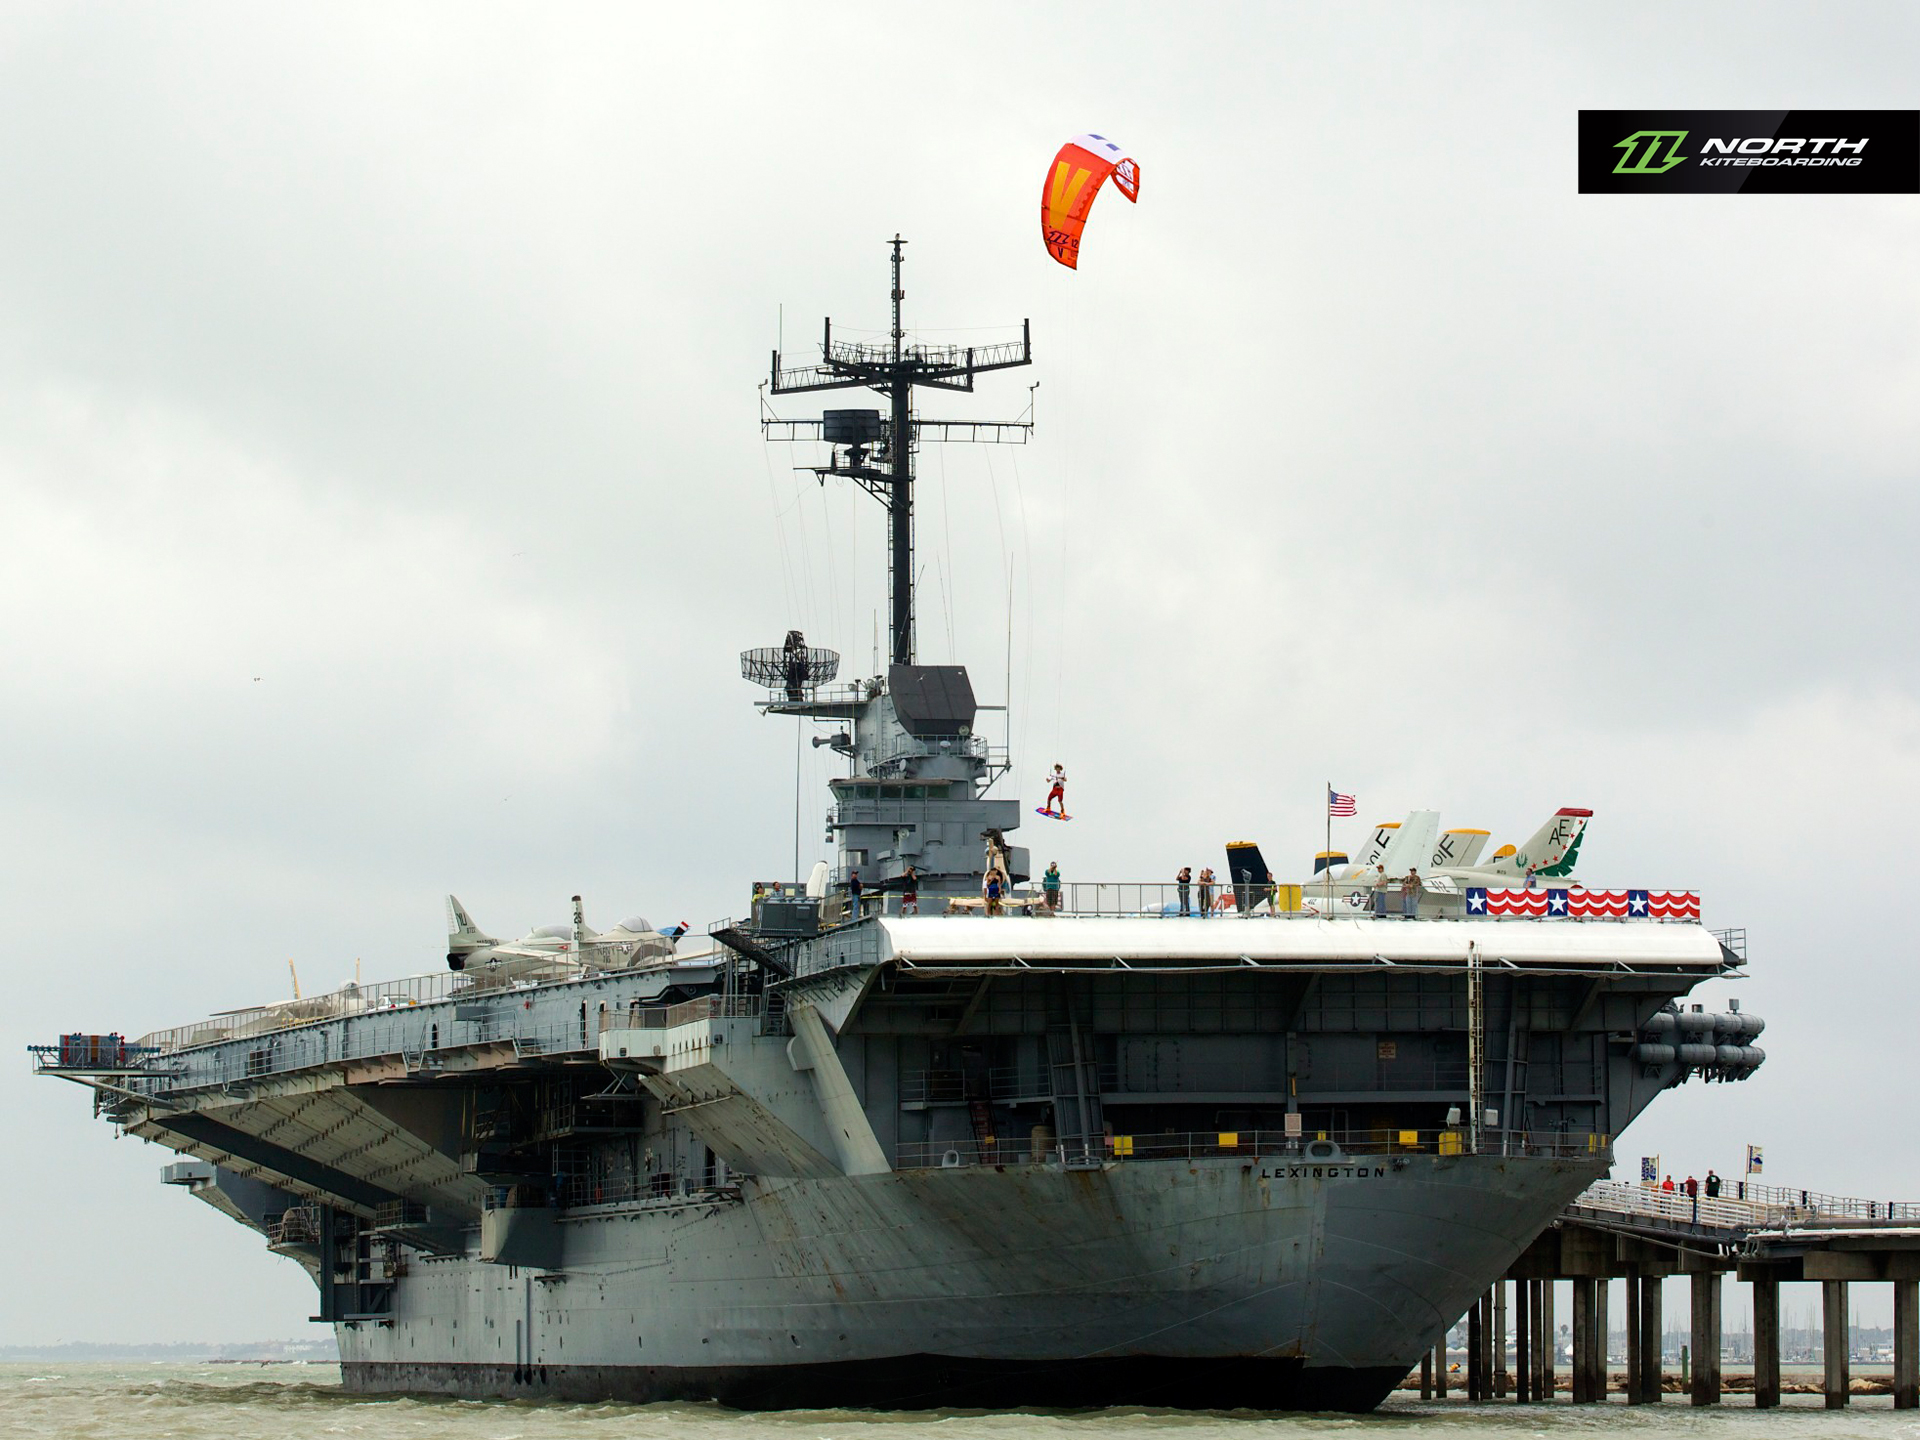 kitesurf wallpaper image - Jumping off an aircraft carrier with a North Vegas kite - in resolution: Standard 4:3 1920 X 1440